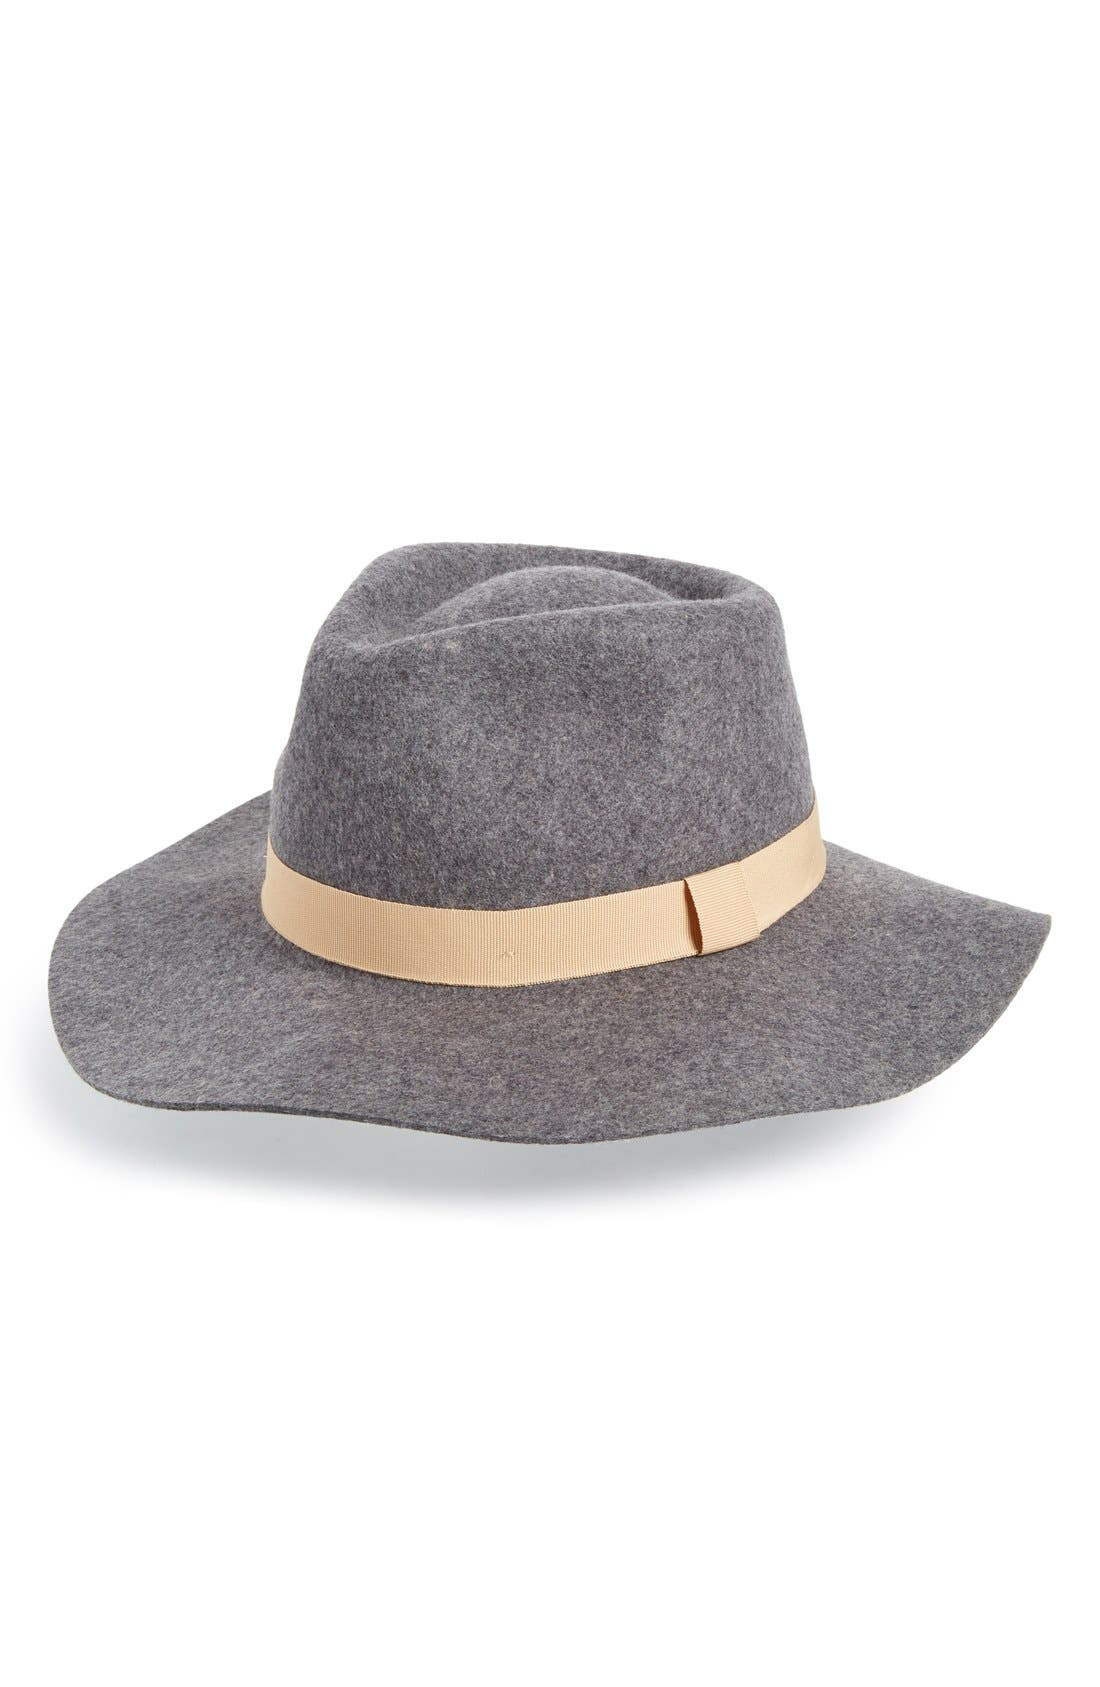 Main Image - Sole Society Wide Brim Fedora